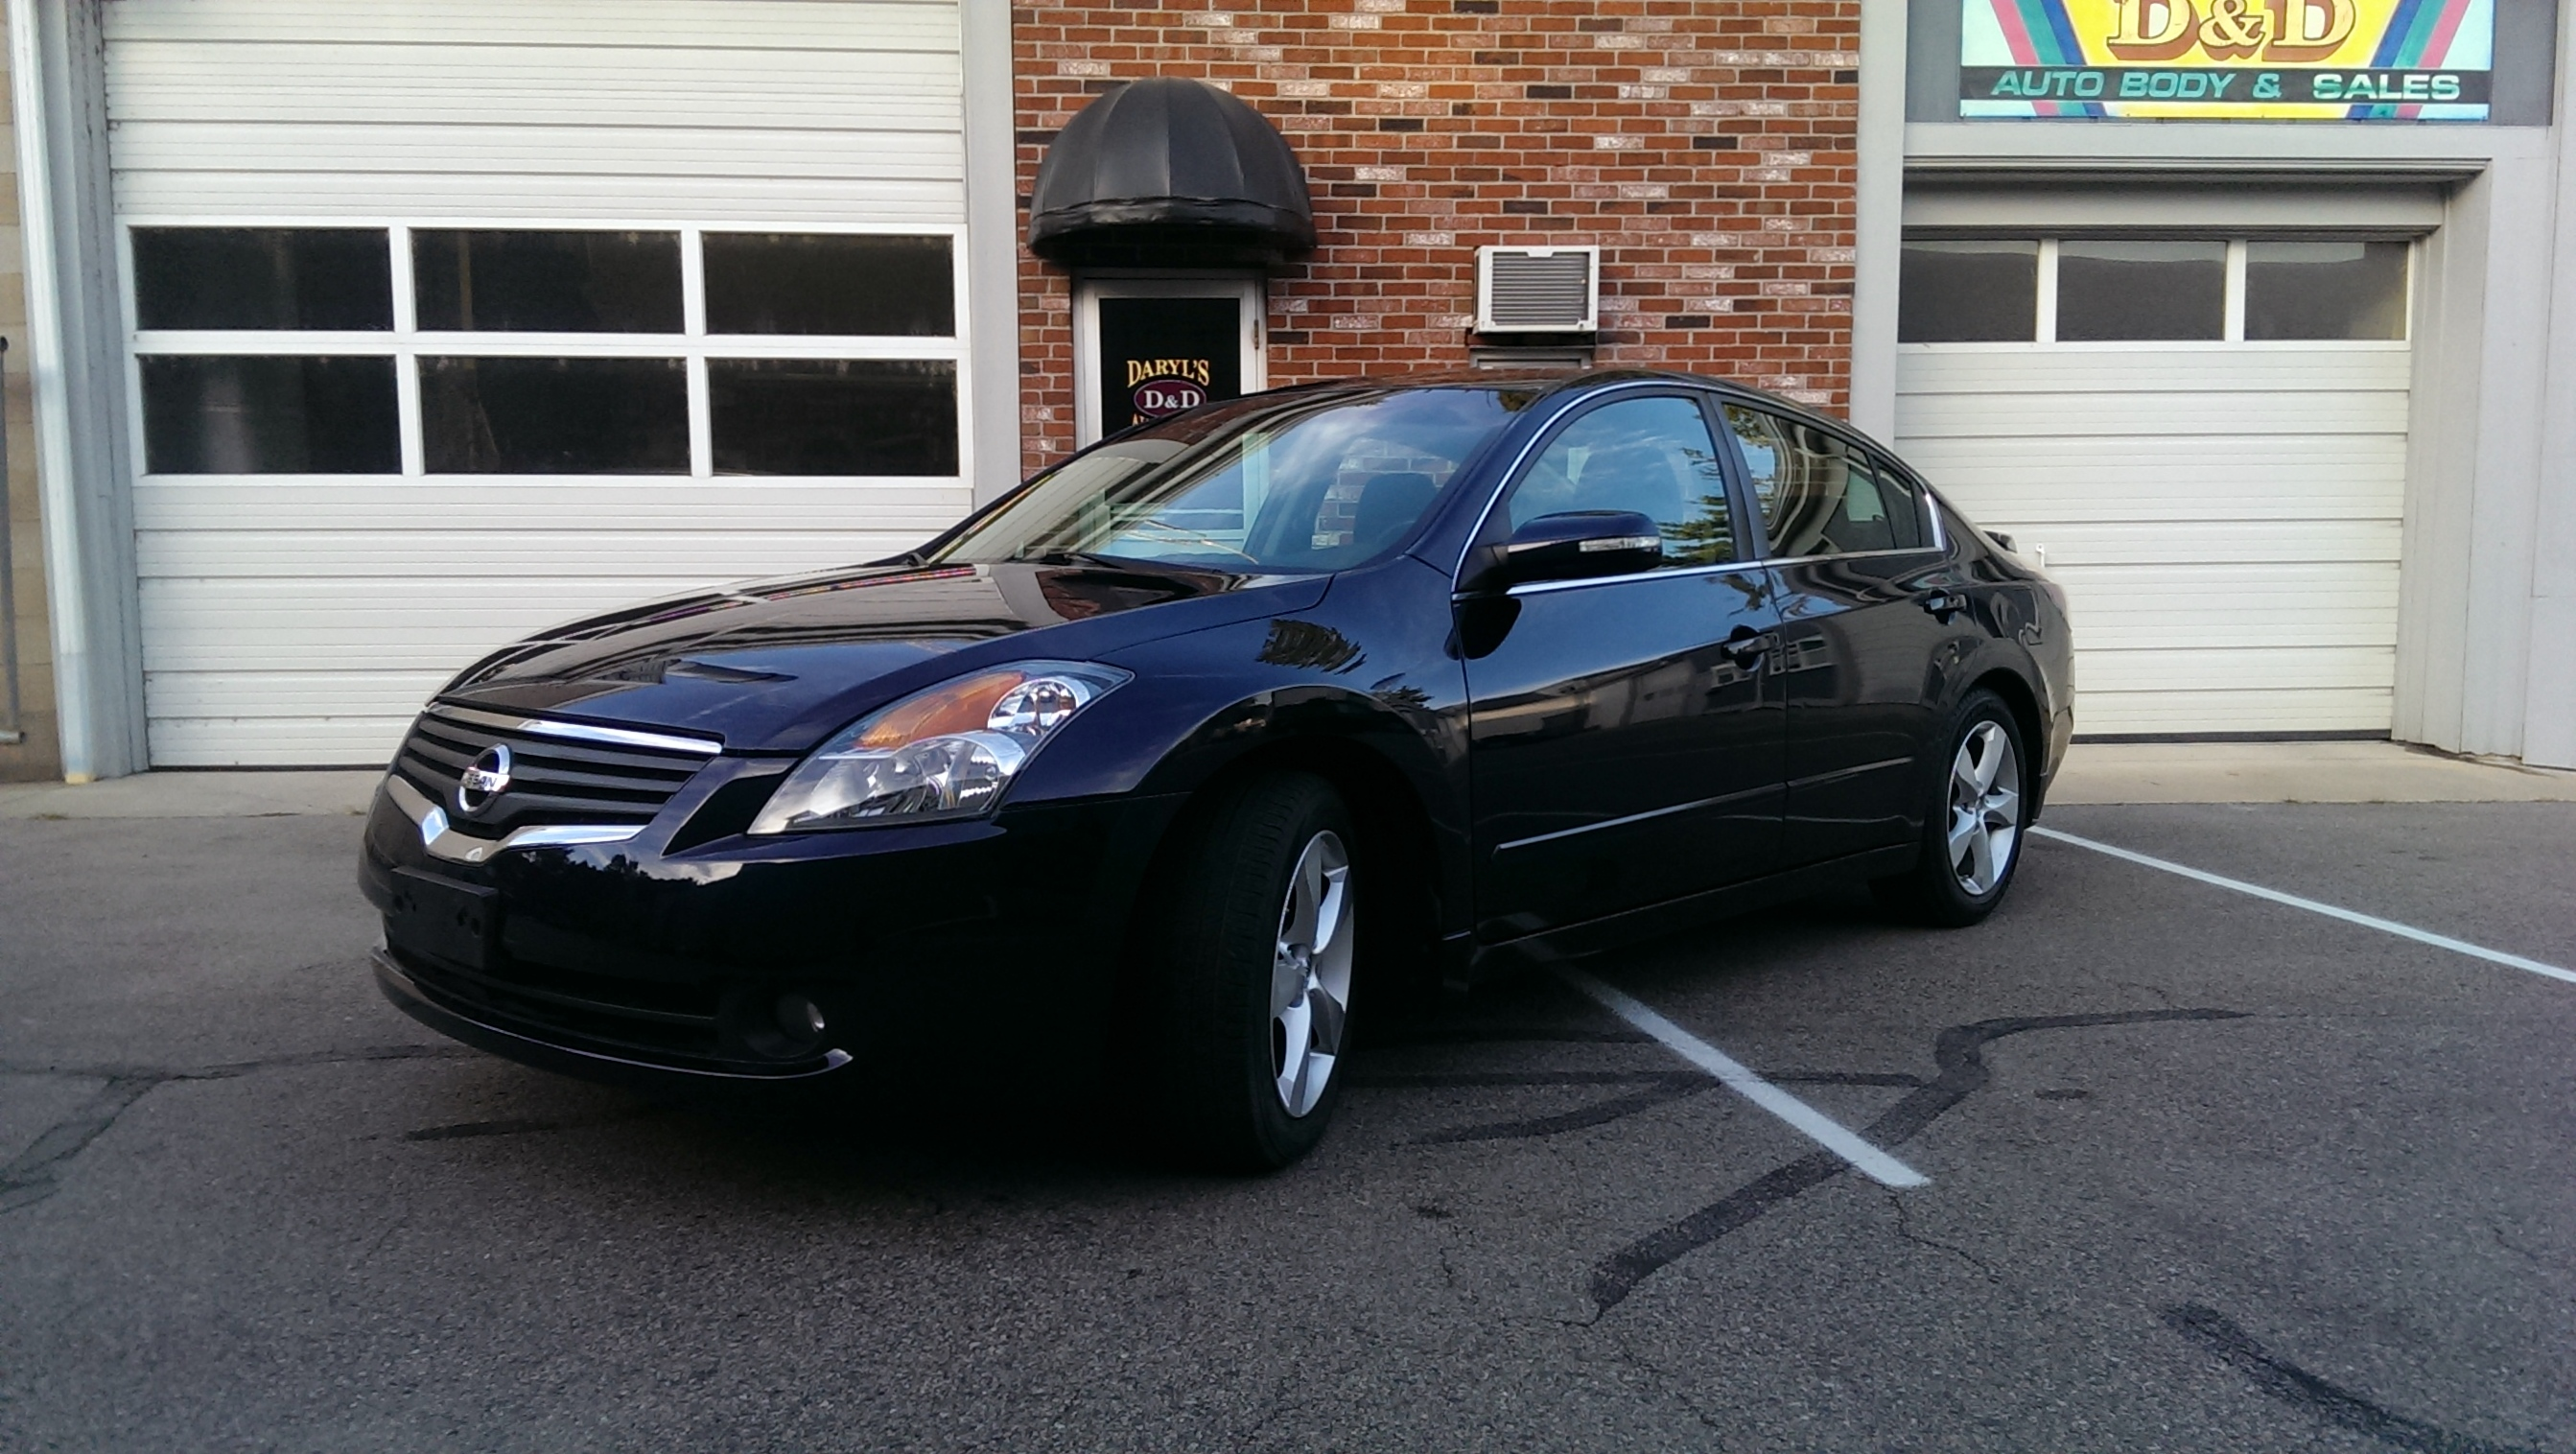 2007 nissan altima for sale used cars for sale norwood ma